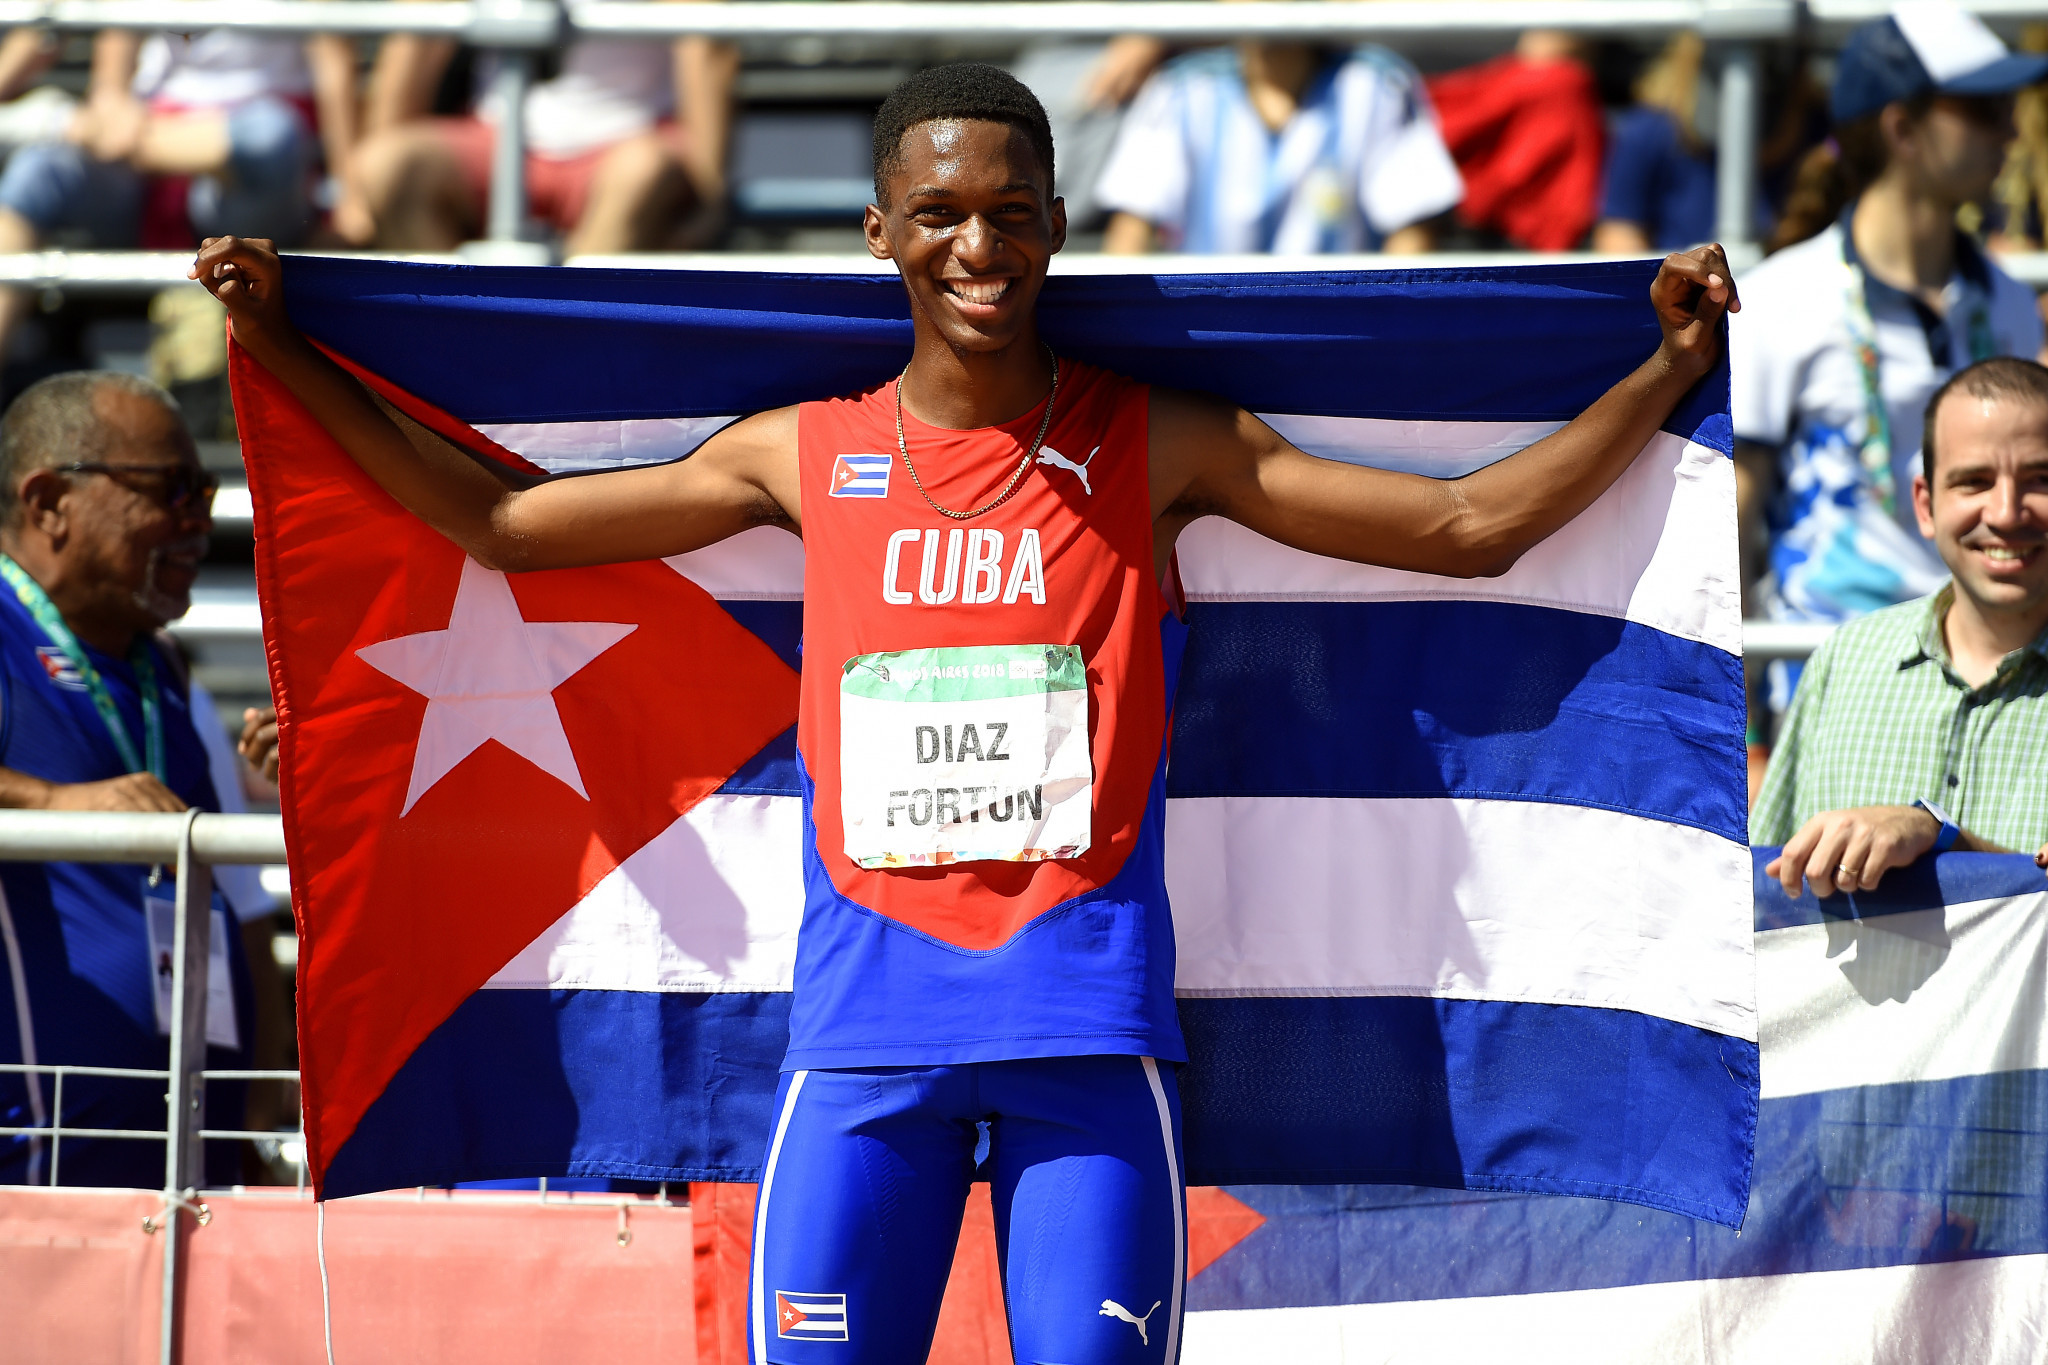 Cuba's  Jordan Diaz Fortun was the clear winner of the men's triple jump ©Getty Images